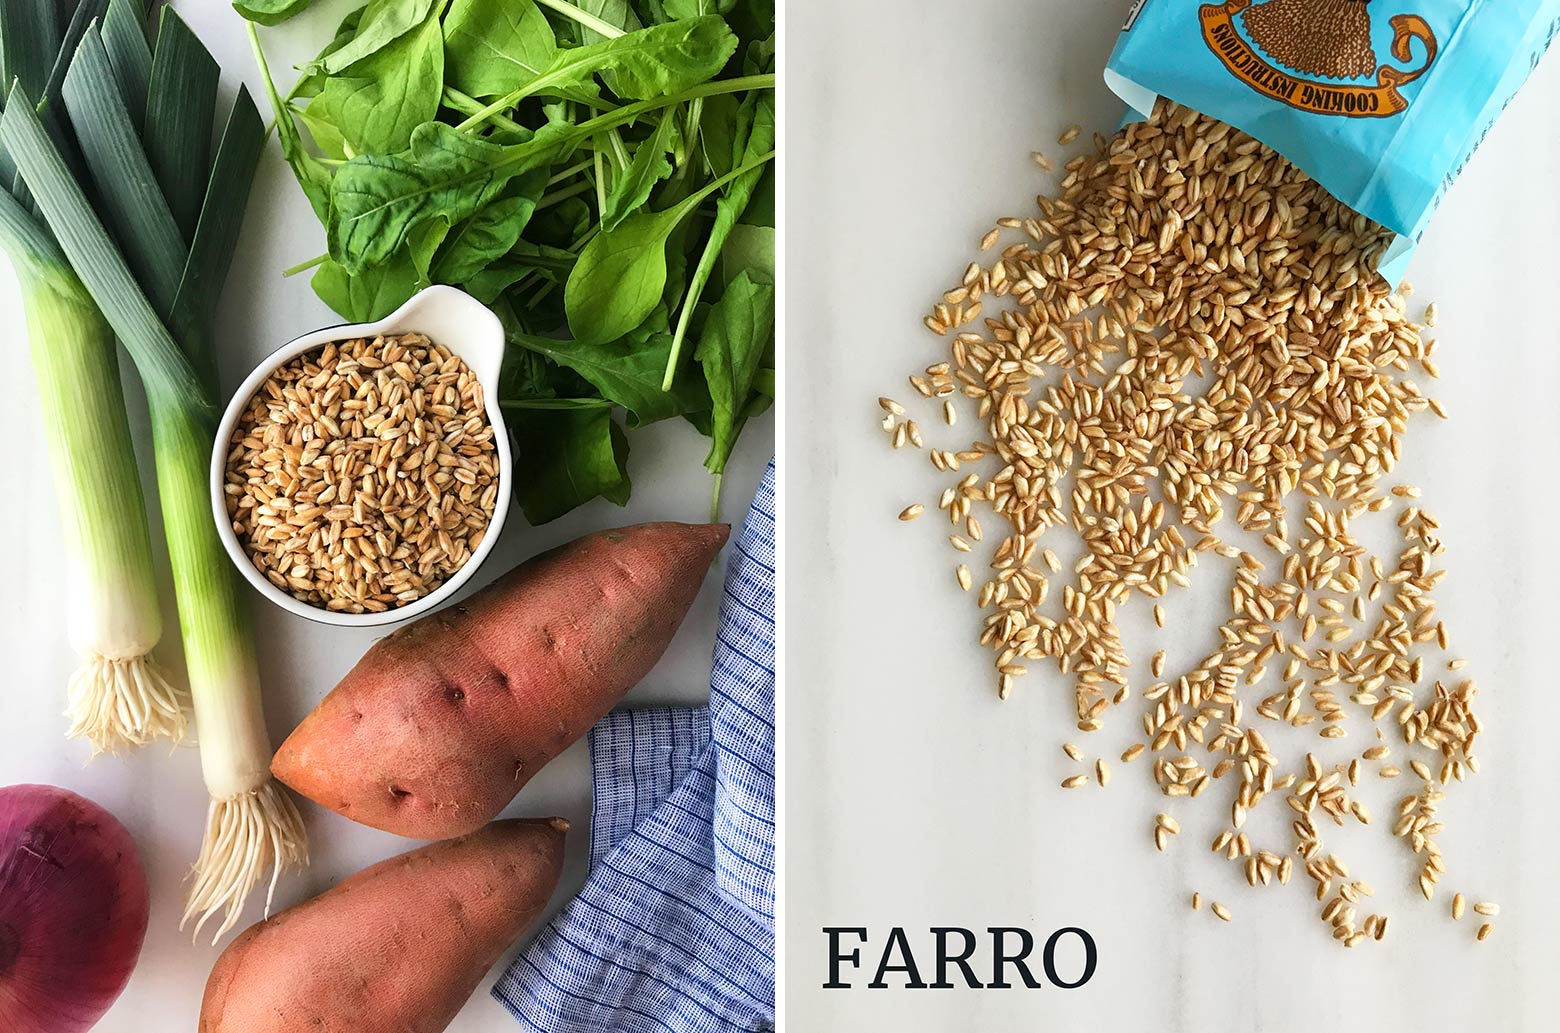 Quick cooking farro and salad ingredients.